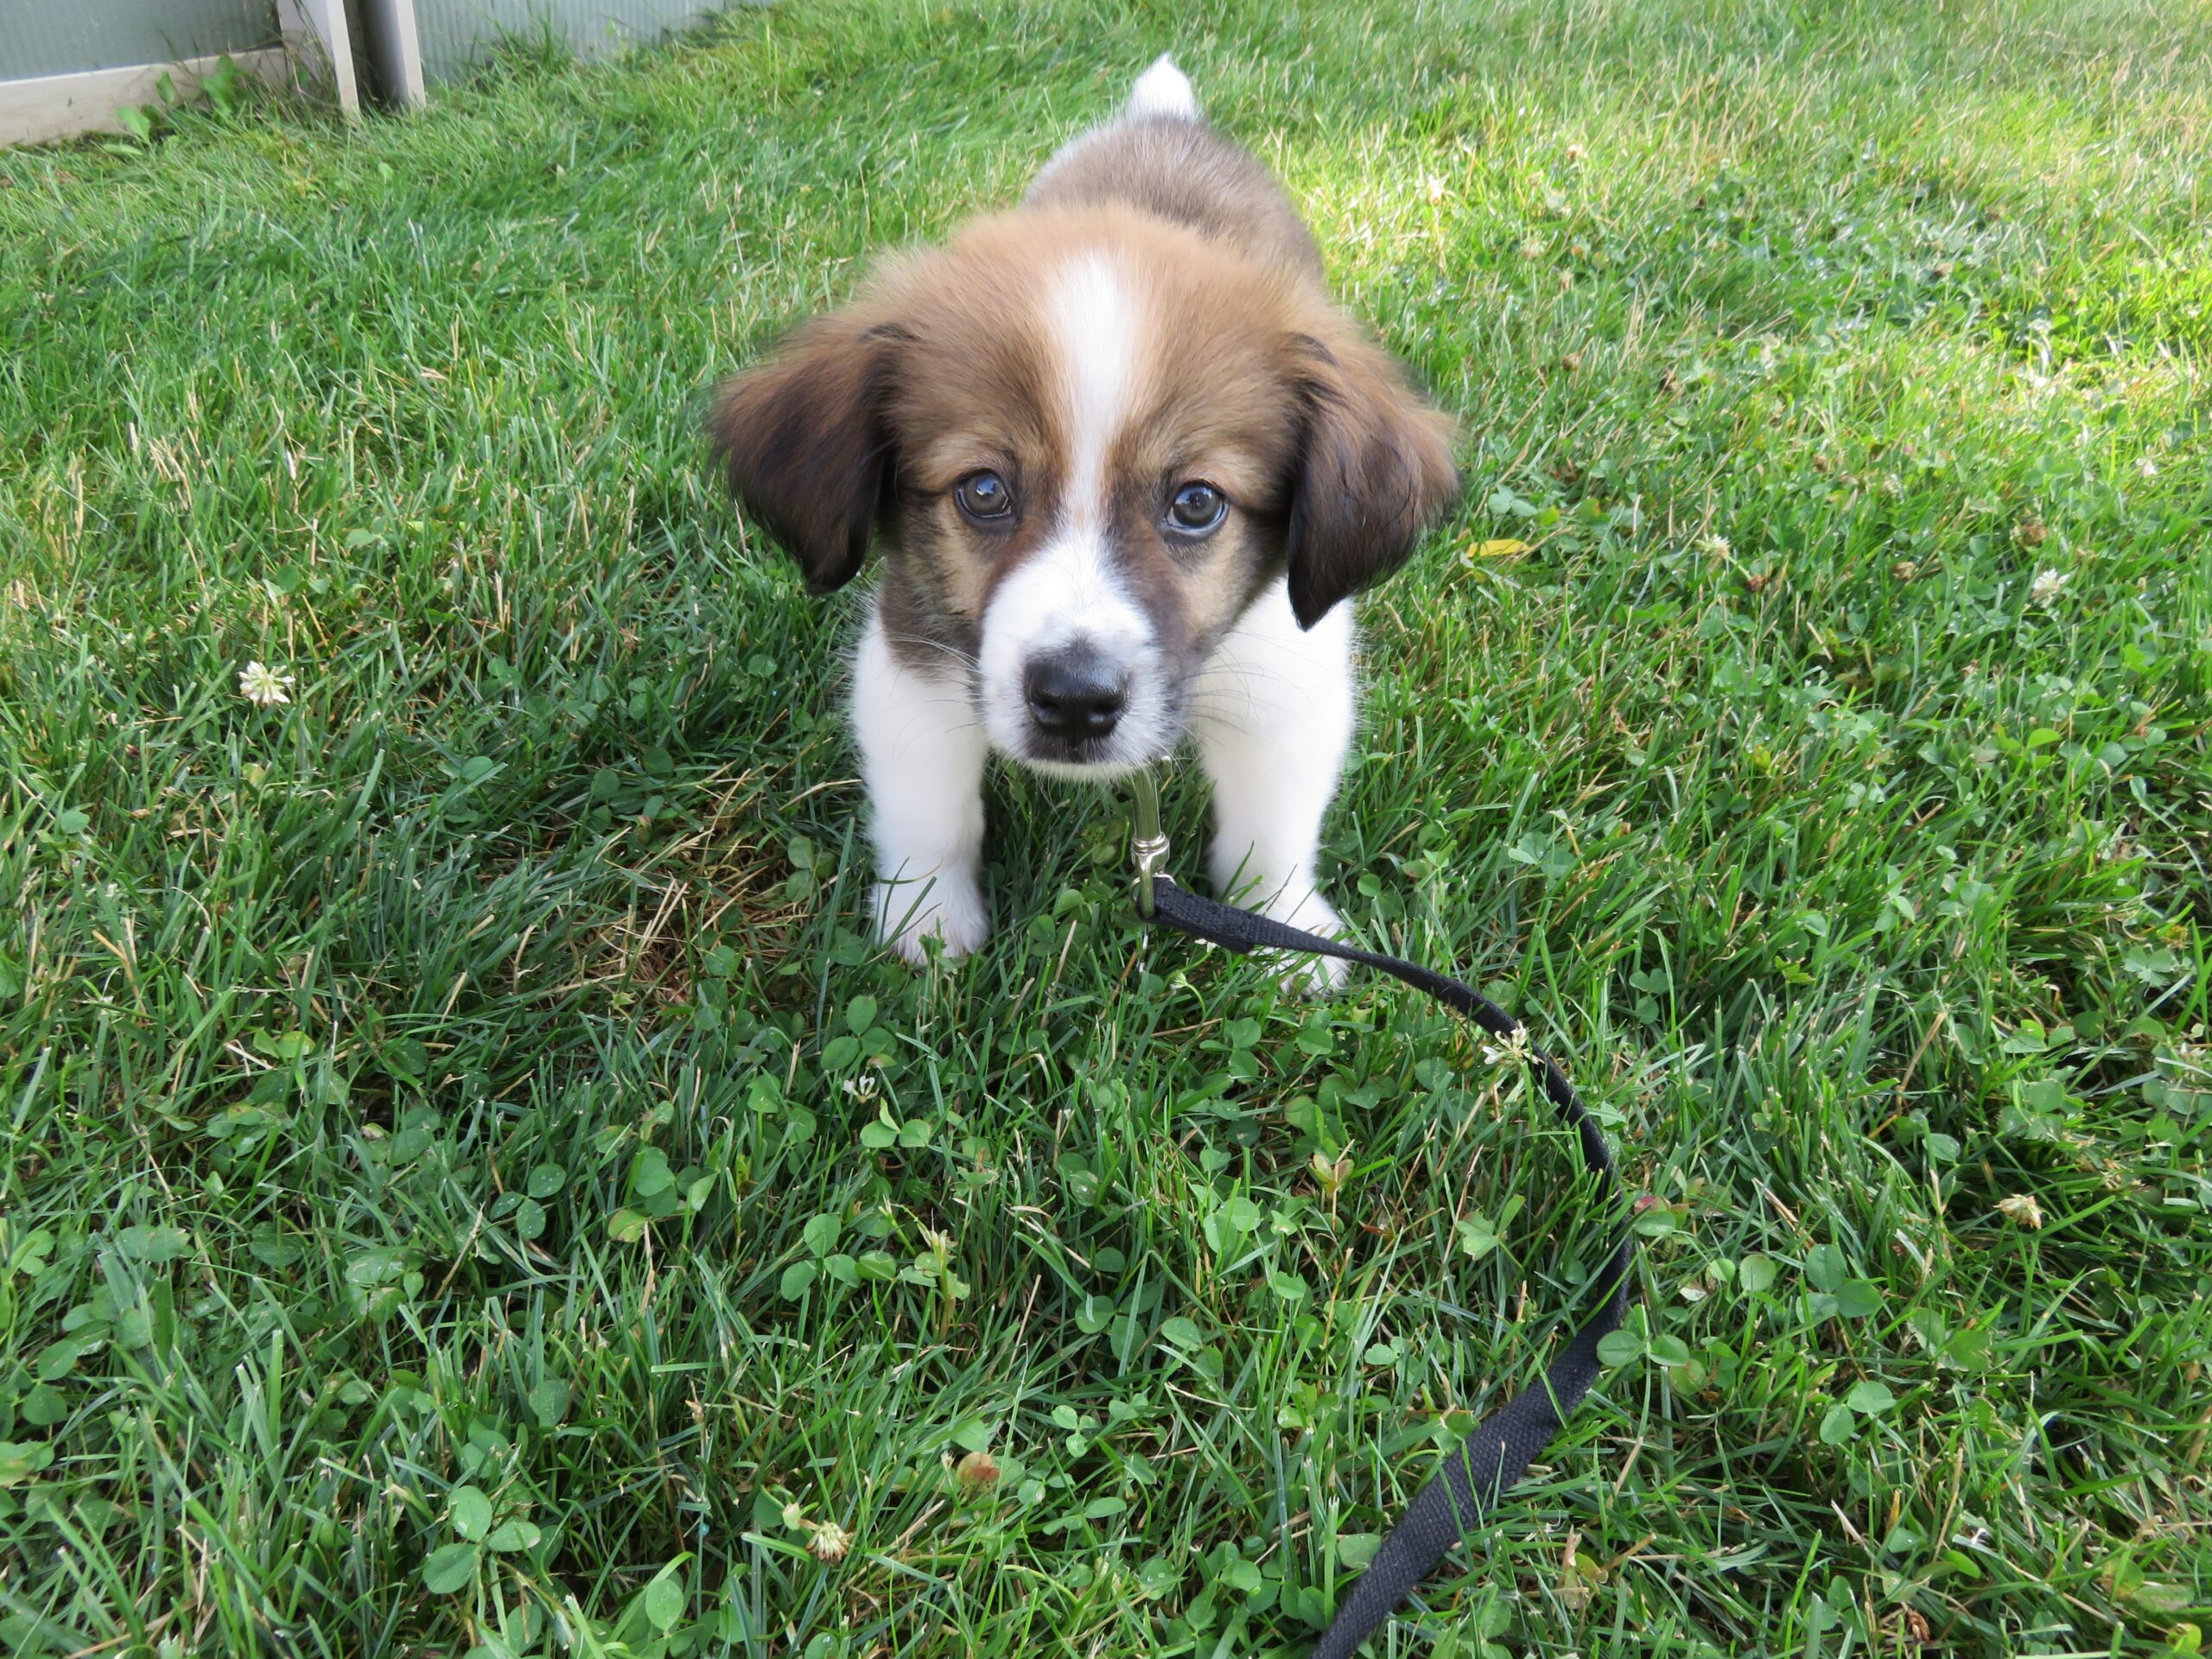 A cute brown and white puppy plays in some grass